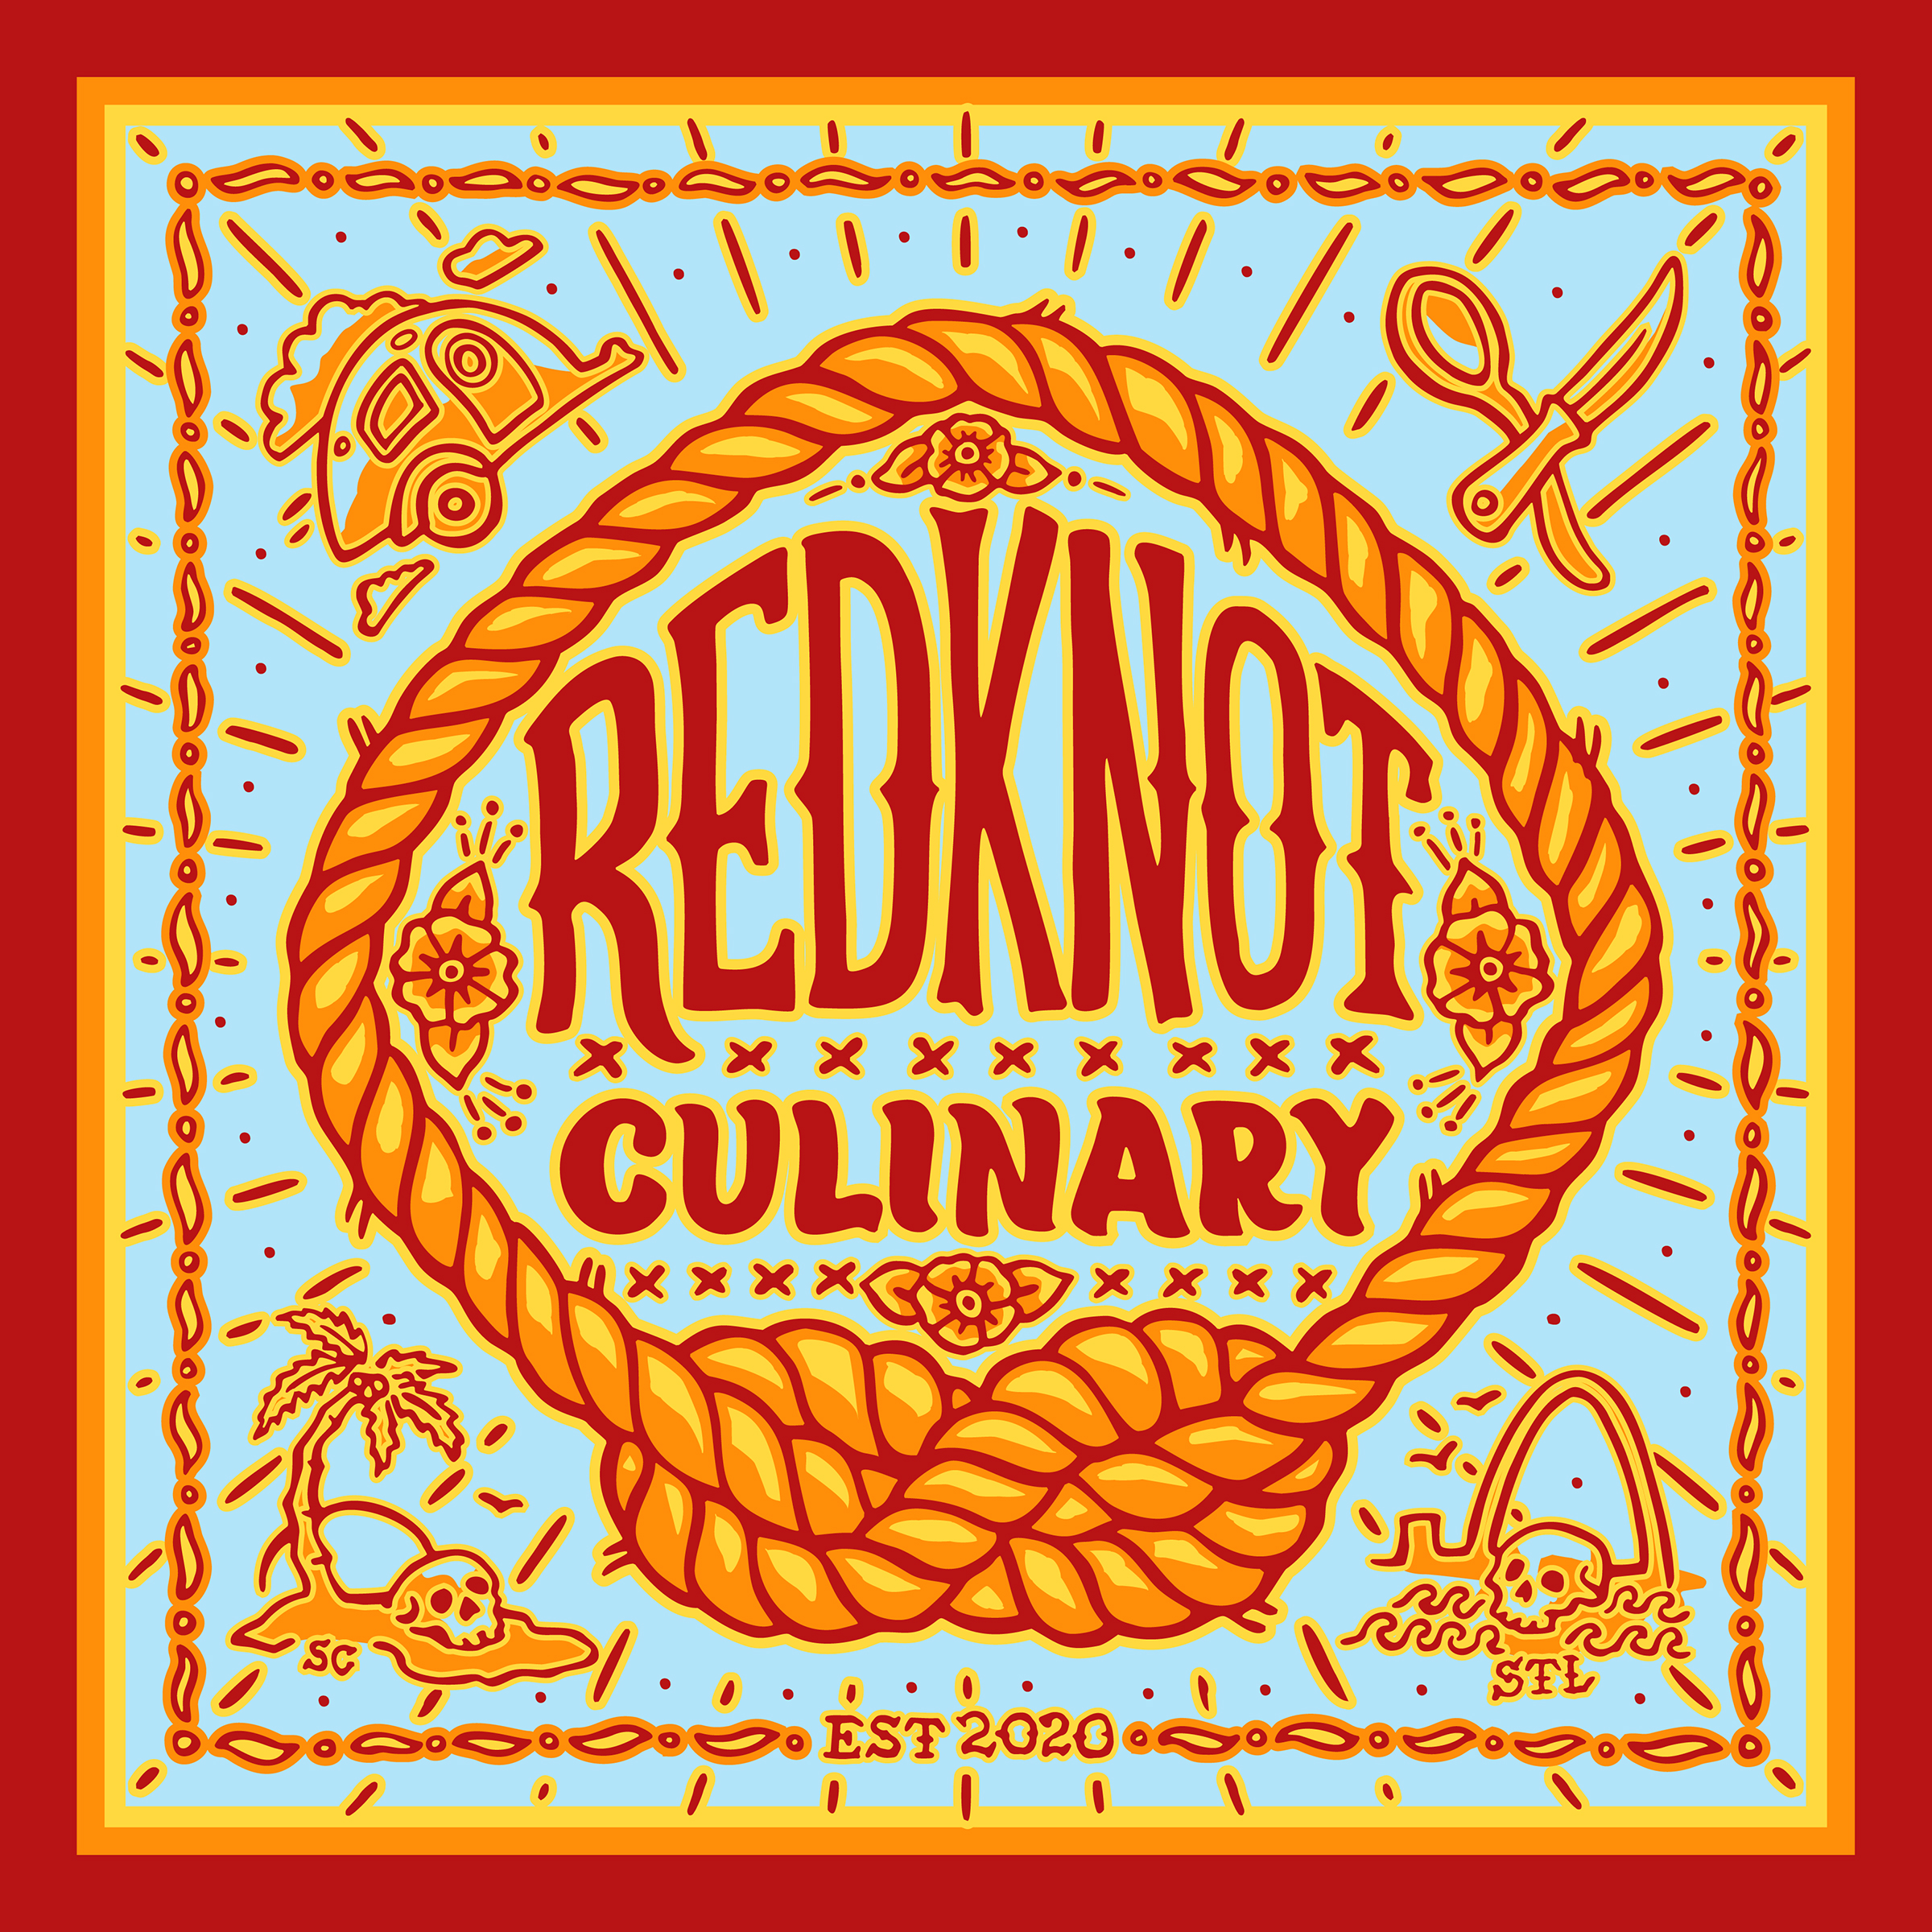 Red Knot Culinary